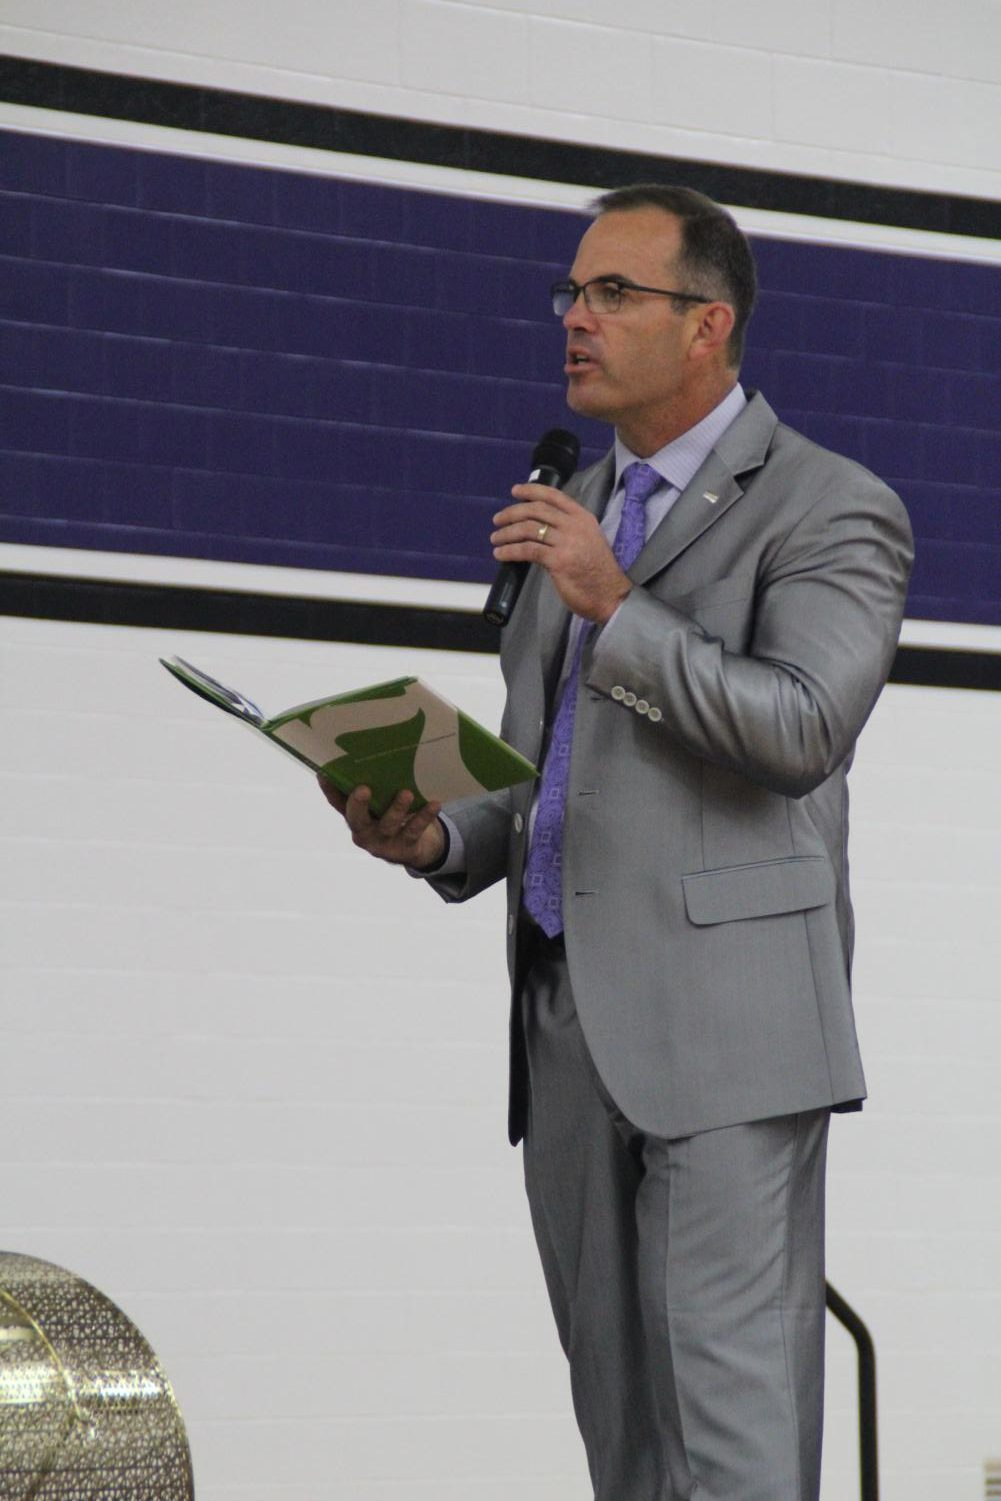 Dr. Jeff Butts addresses the crowd at the opening ceremony for the 2018-19 school year. Today he was announced as one of four finalists for the National Superintendent Award.